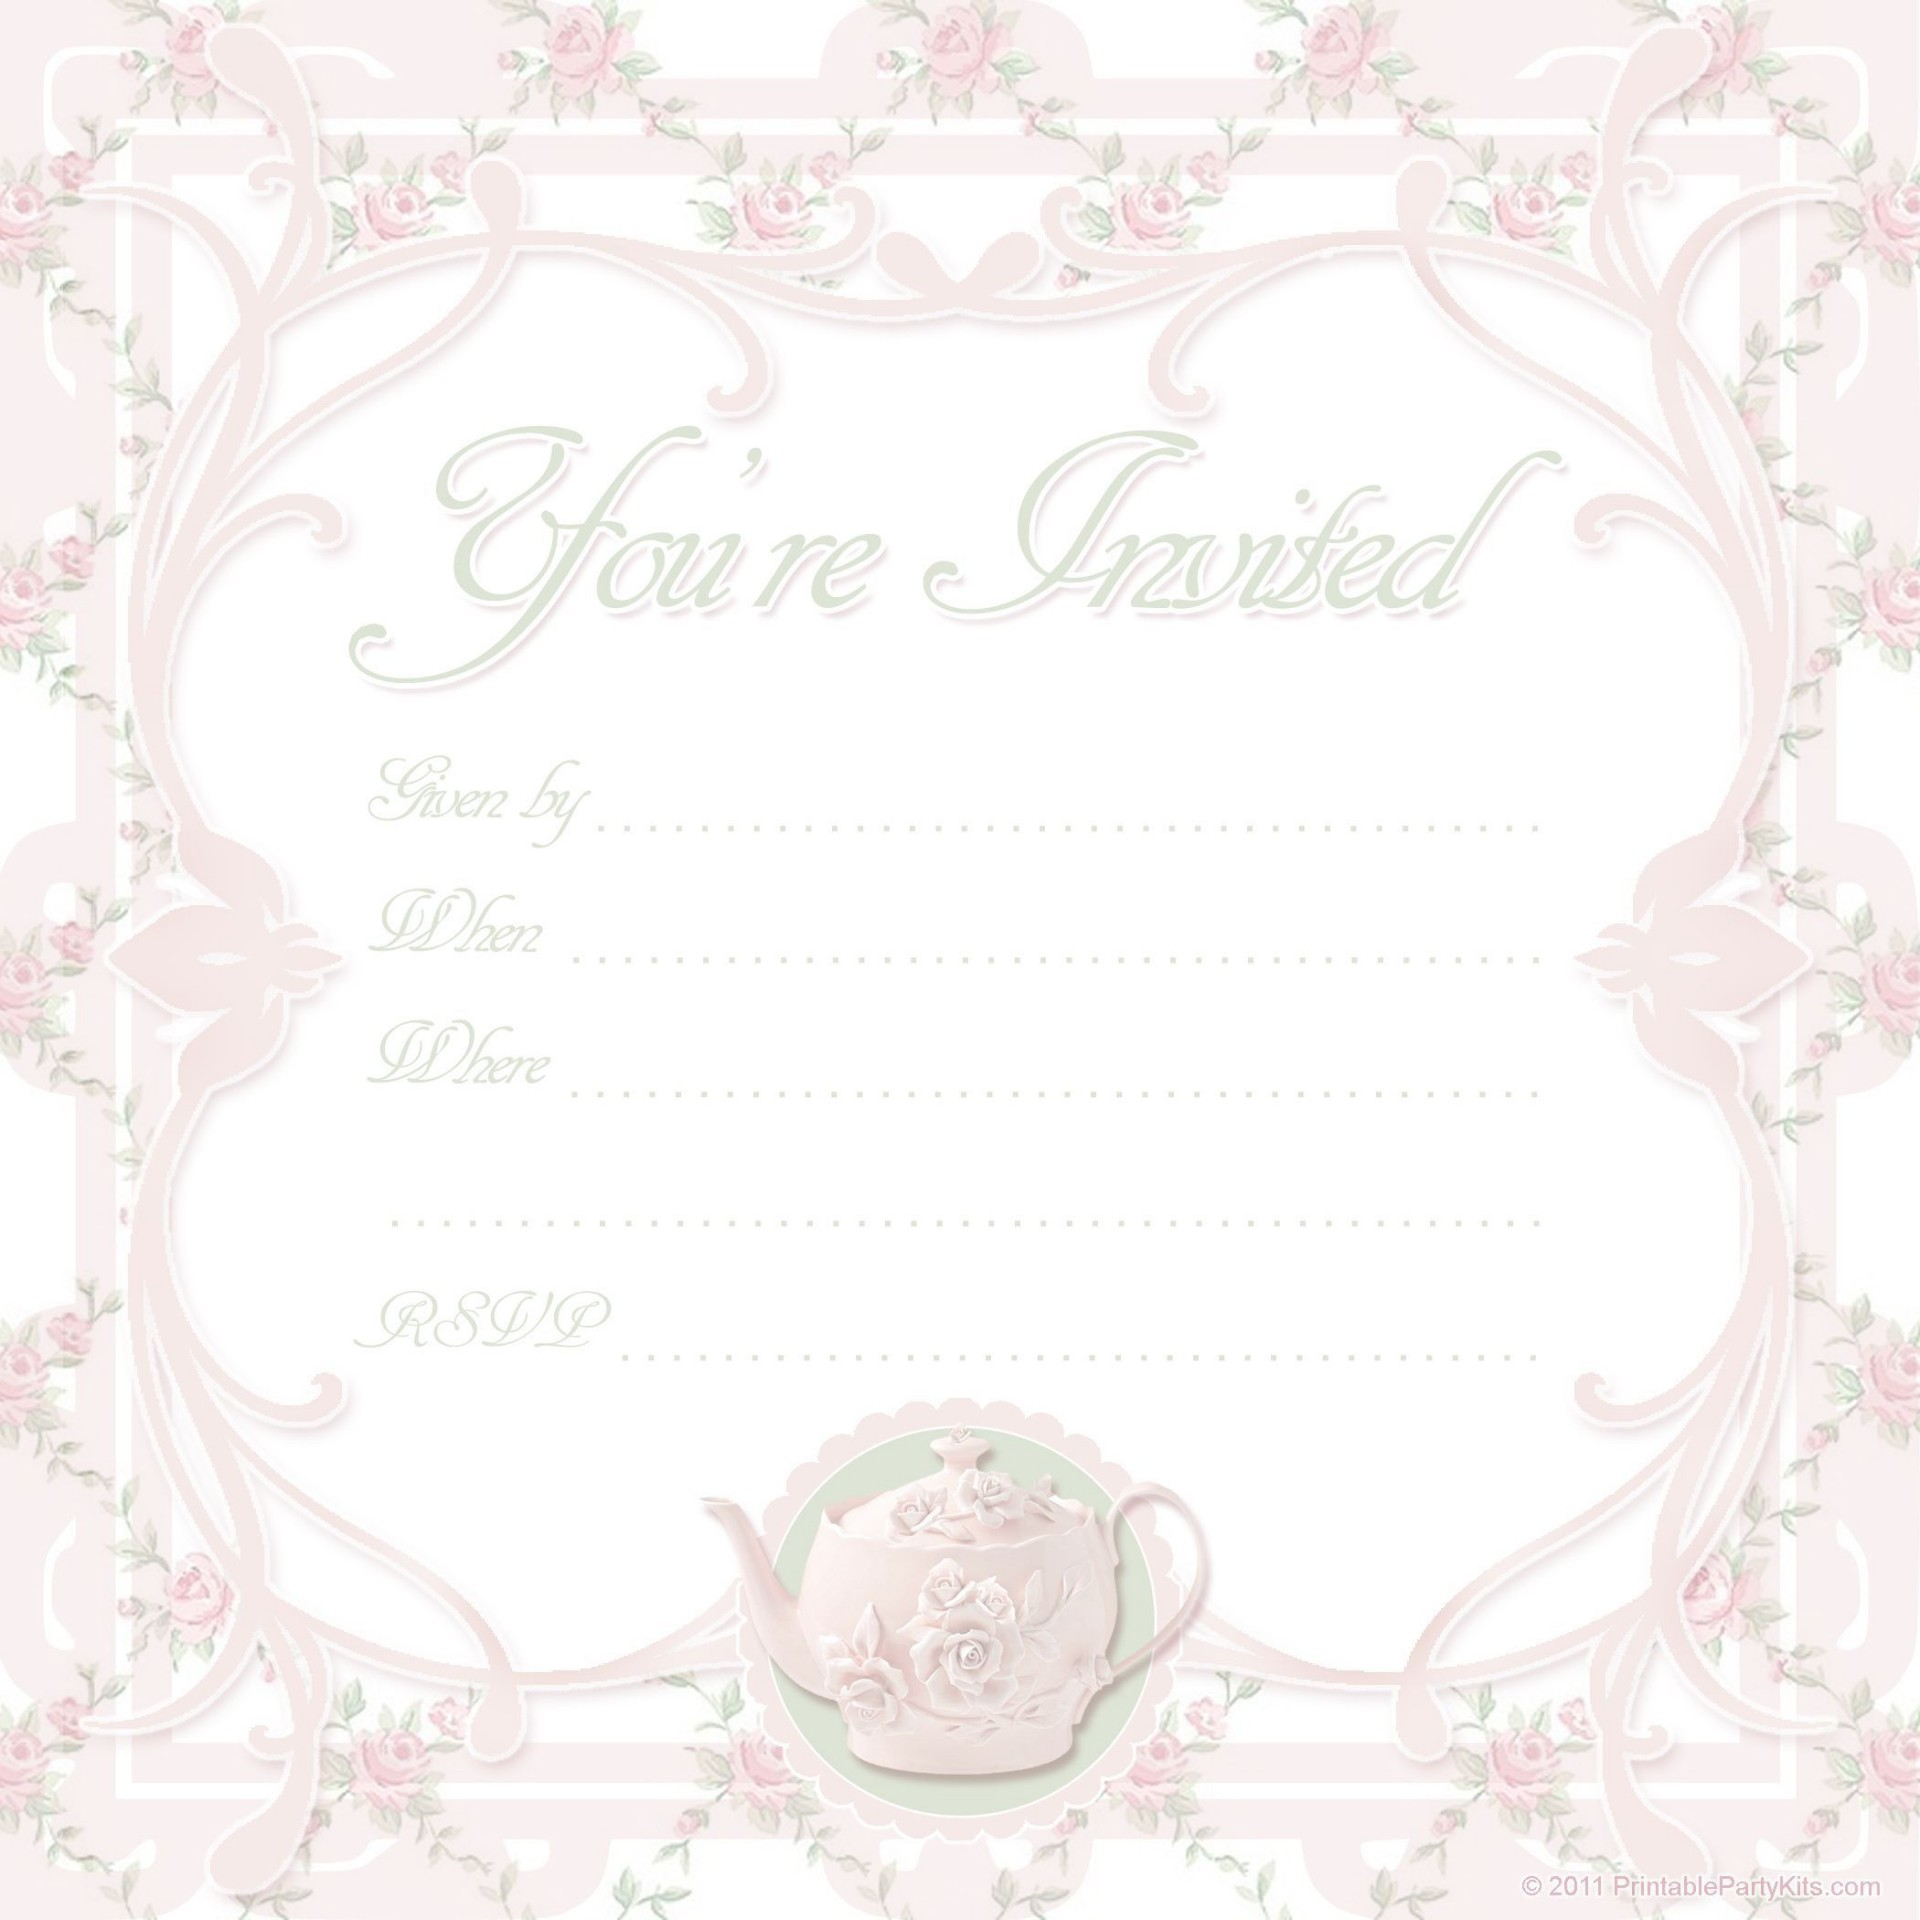 000 Unbelievable Tea Party Invitation Template Free Sample  Vintage Princes Printable1920